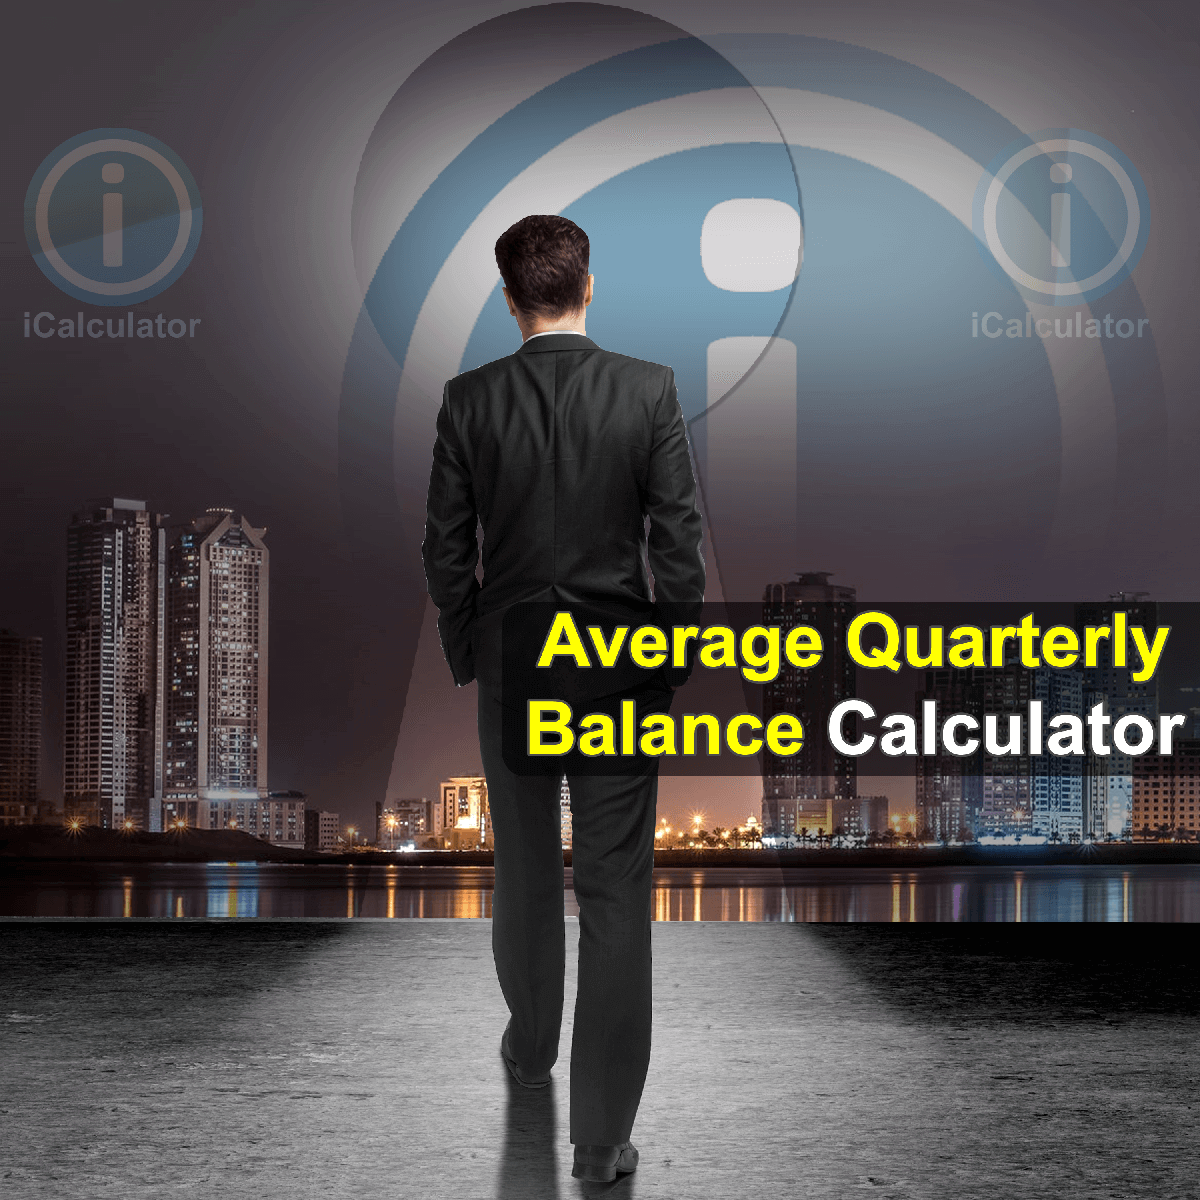 Average Quarterly Balance Calculator. This image provides details of how to calculate the average quarterly balance using a calculator and notepad. By using the Average Quarterly Balance formula, the Average Quarterly Balance Calculator provides a true calculation of the balance throughout a particular period for business and personal finance and accounting.